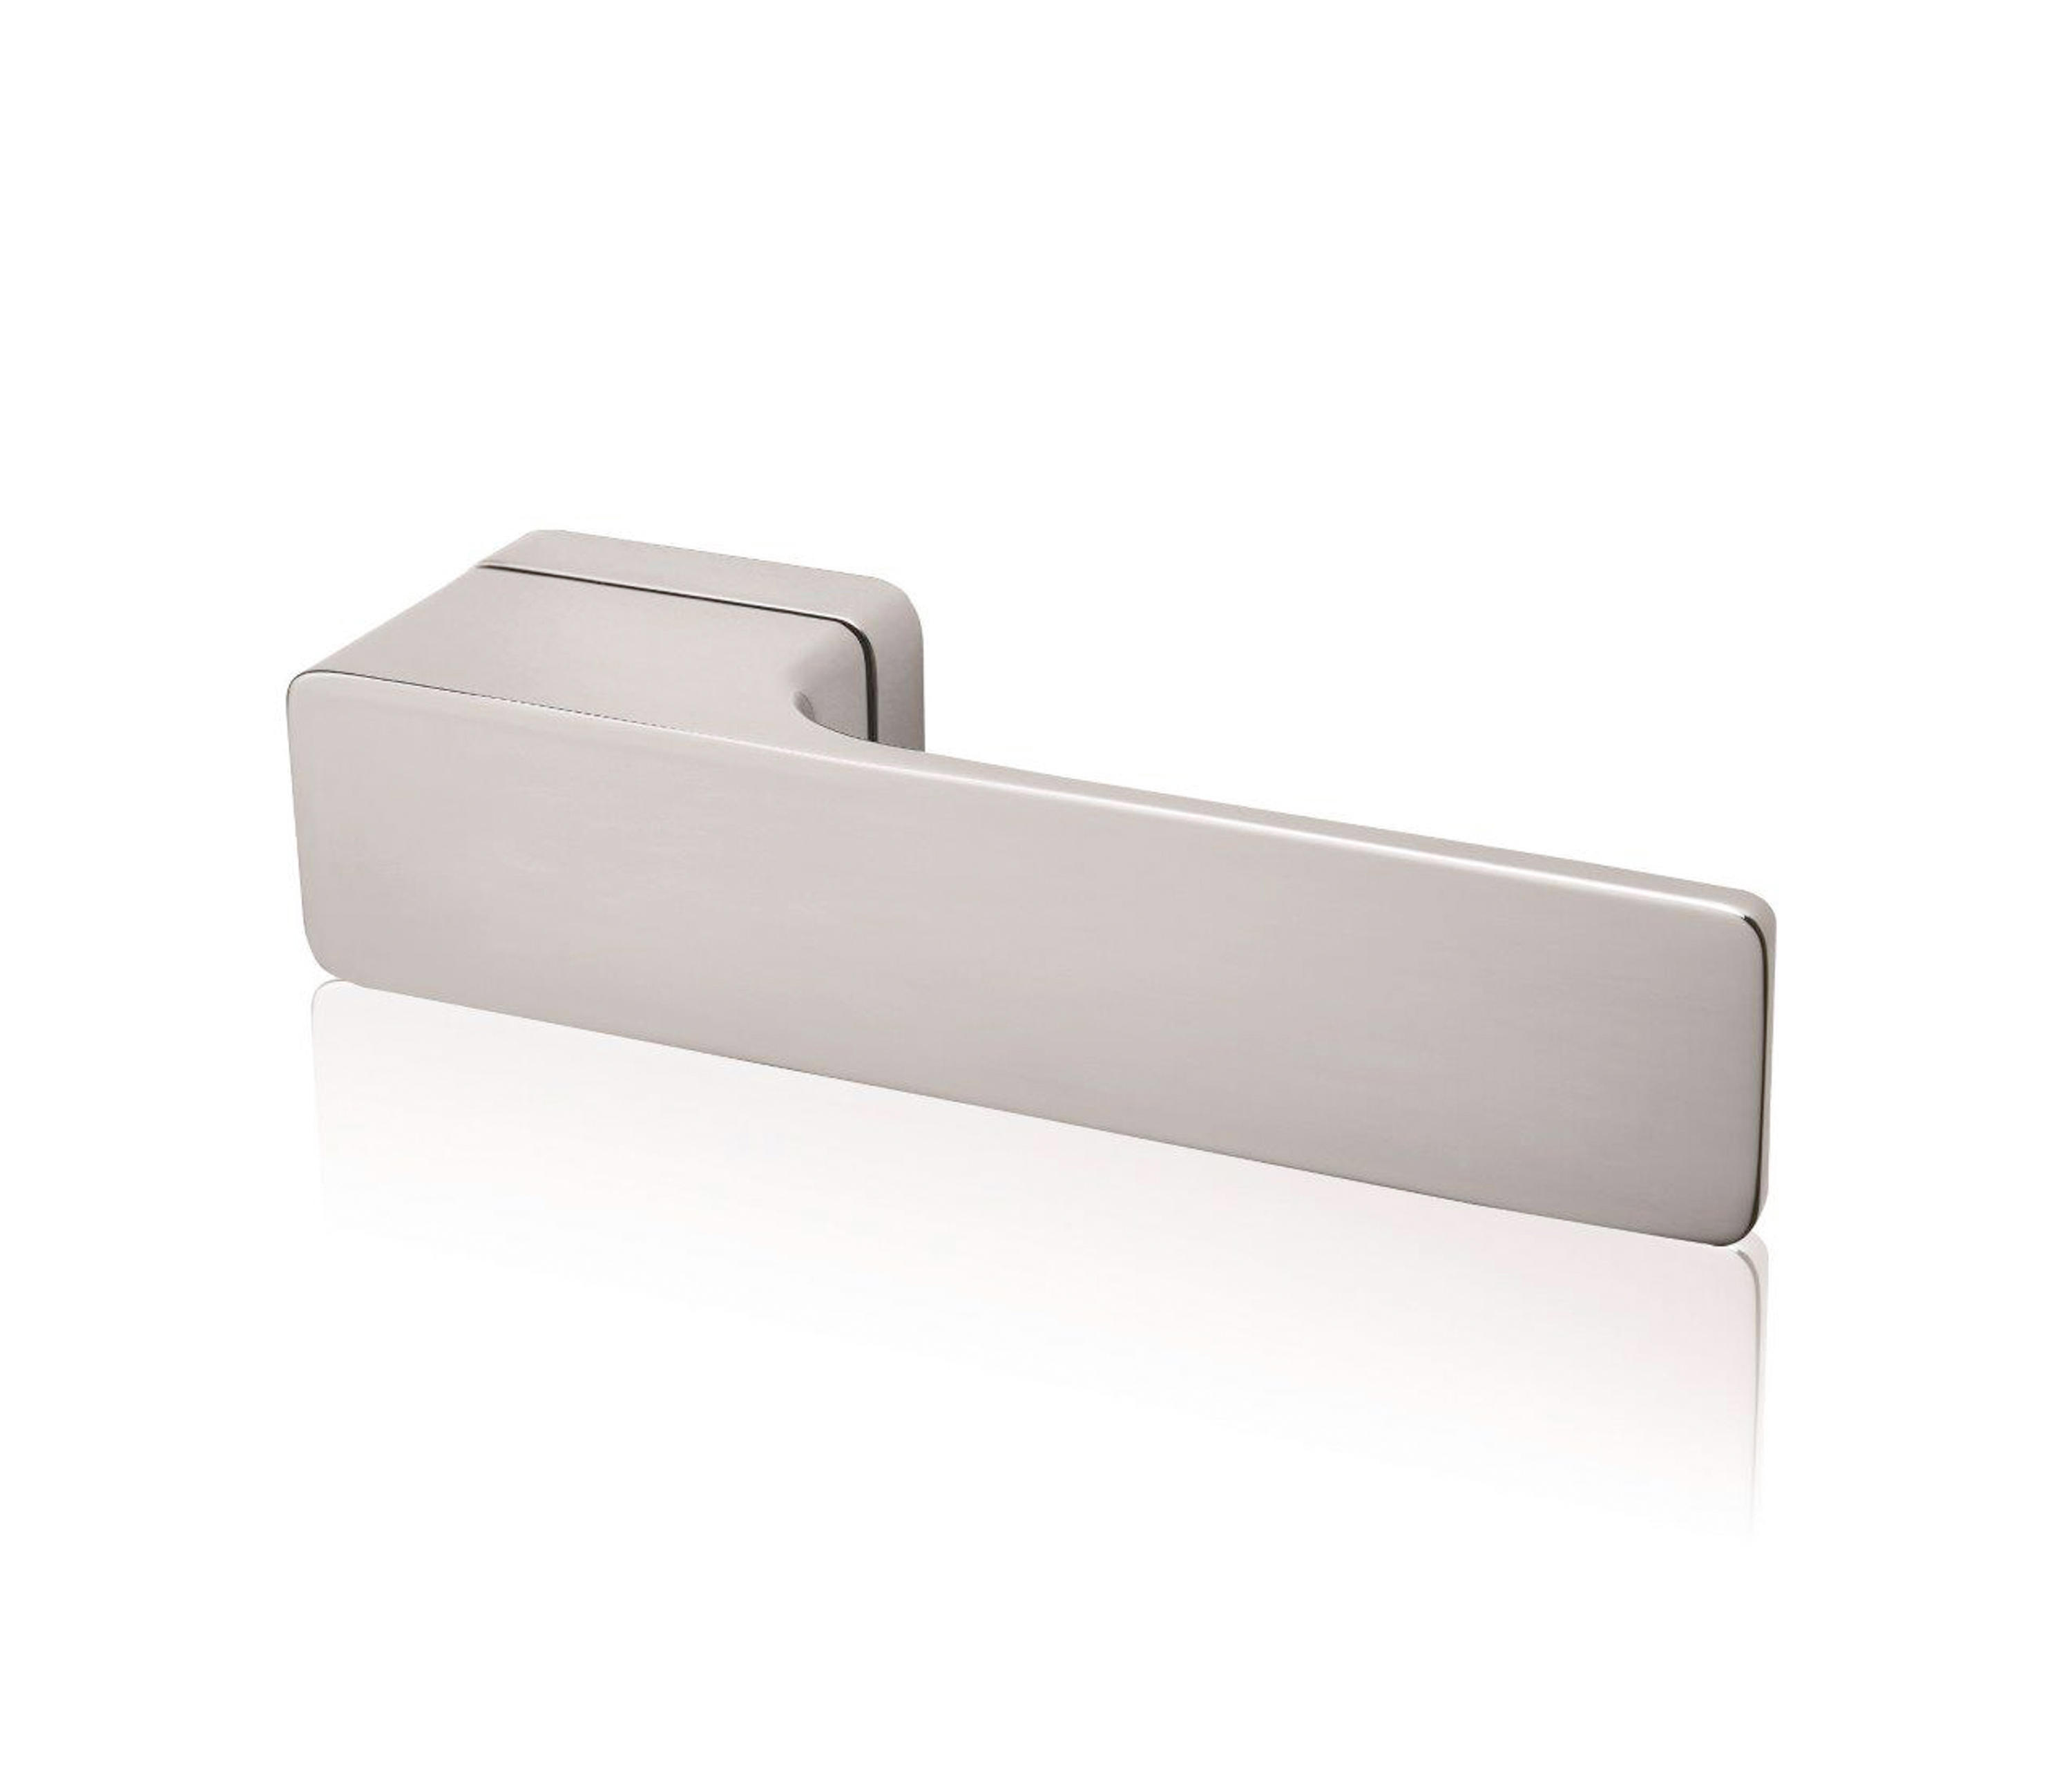 Minimal Door Handle by Mu0026T Manufacture | Lever handles  sc 1 st  Architonic & MINIMAL DOOR HANDLE - Lever handles from Mu0026T Manufacture | Architonic